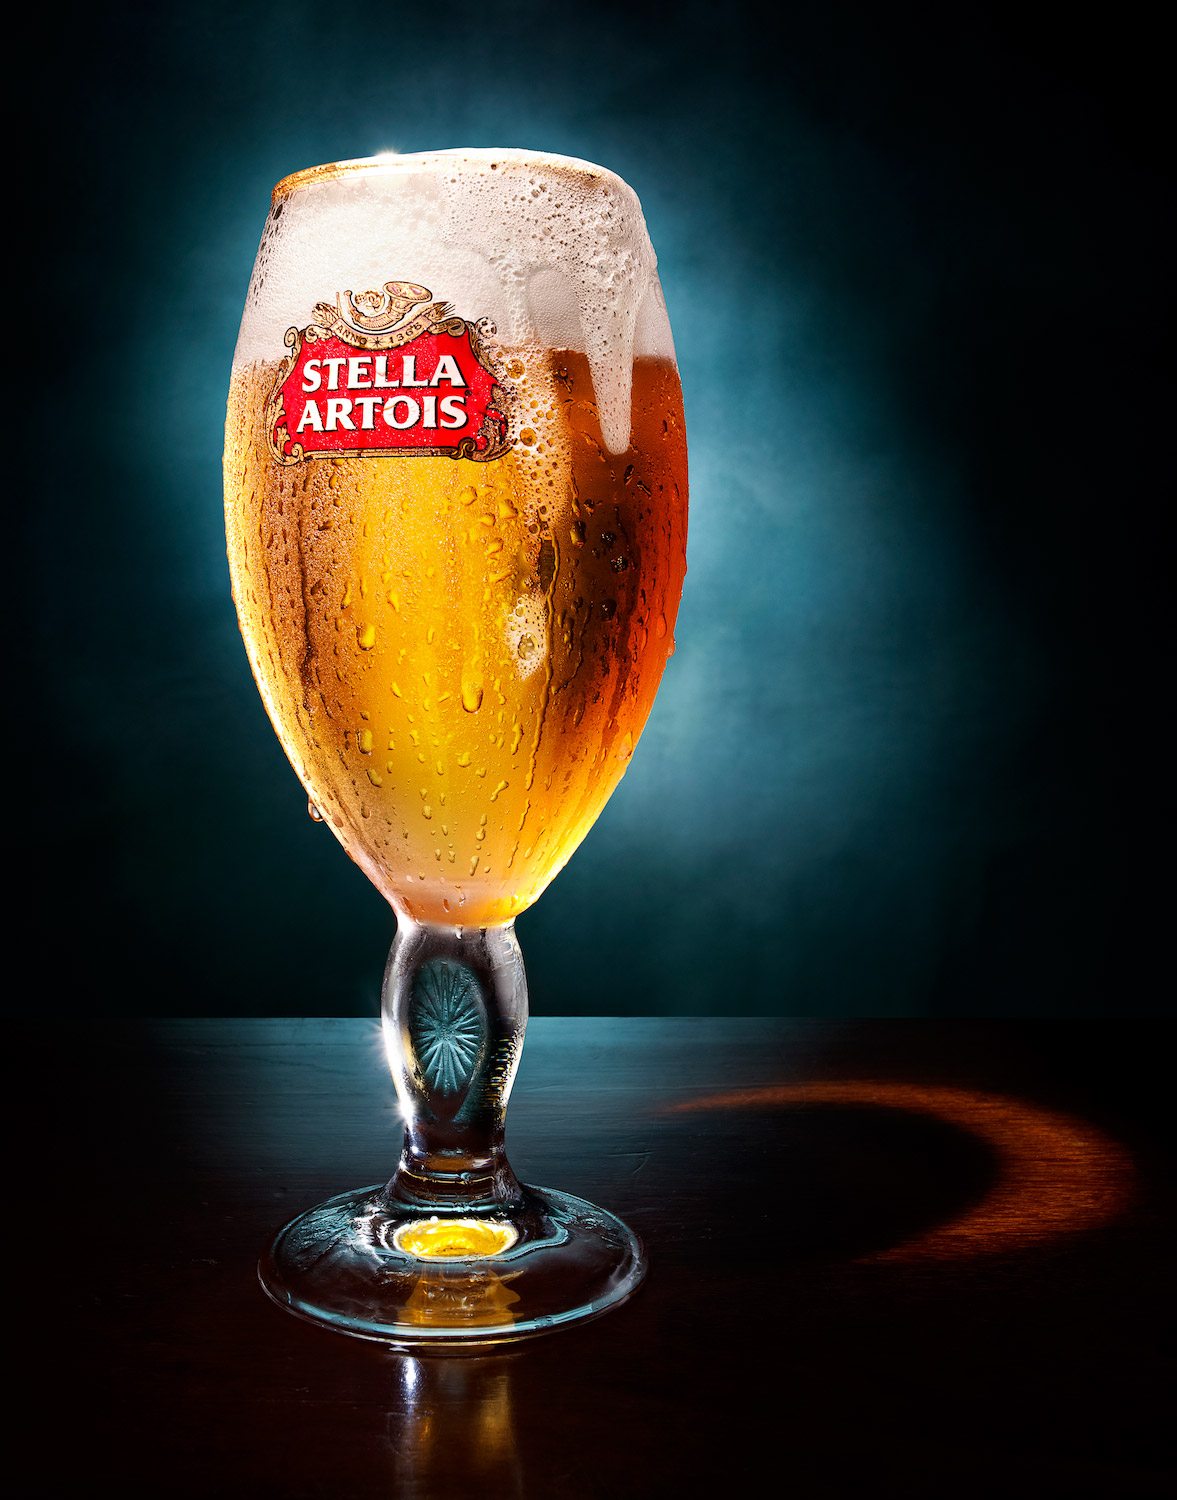 008_1_Still_Life_Product_Photographer_Pedersen_drink_advertising_beer_lager_stella_bar_pub_alcohol_artois_liquid.jpg